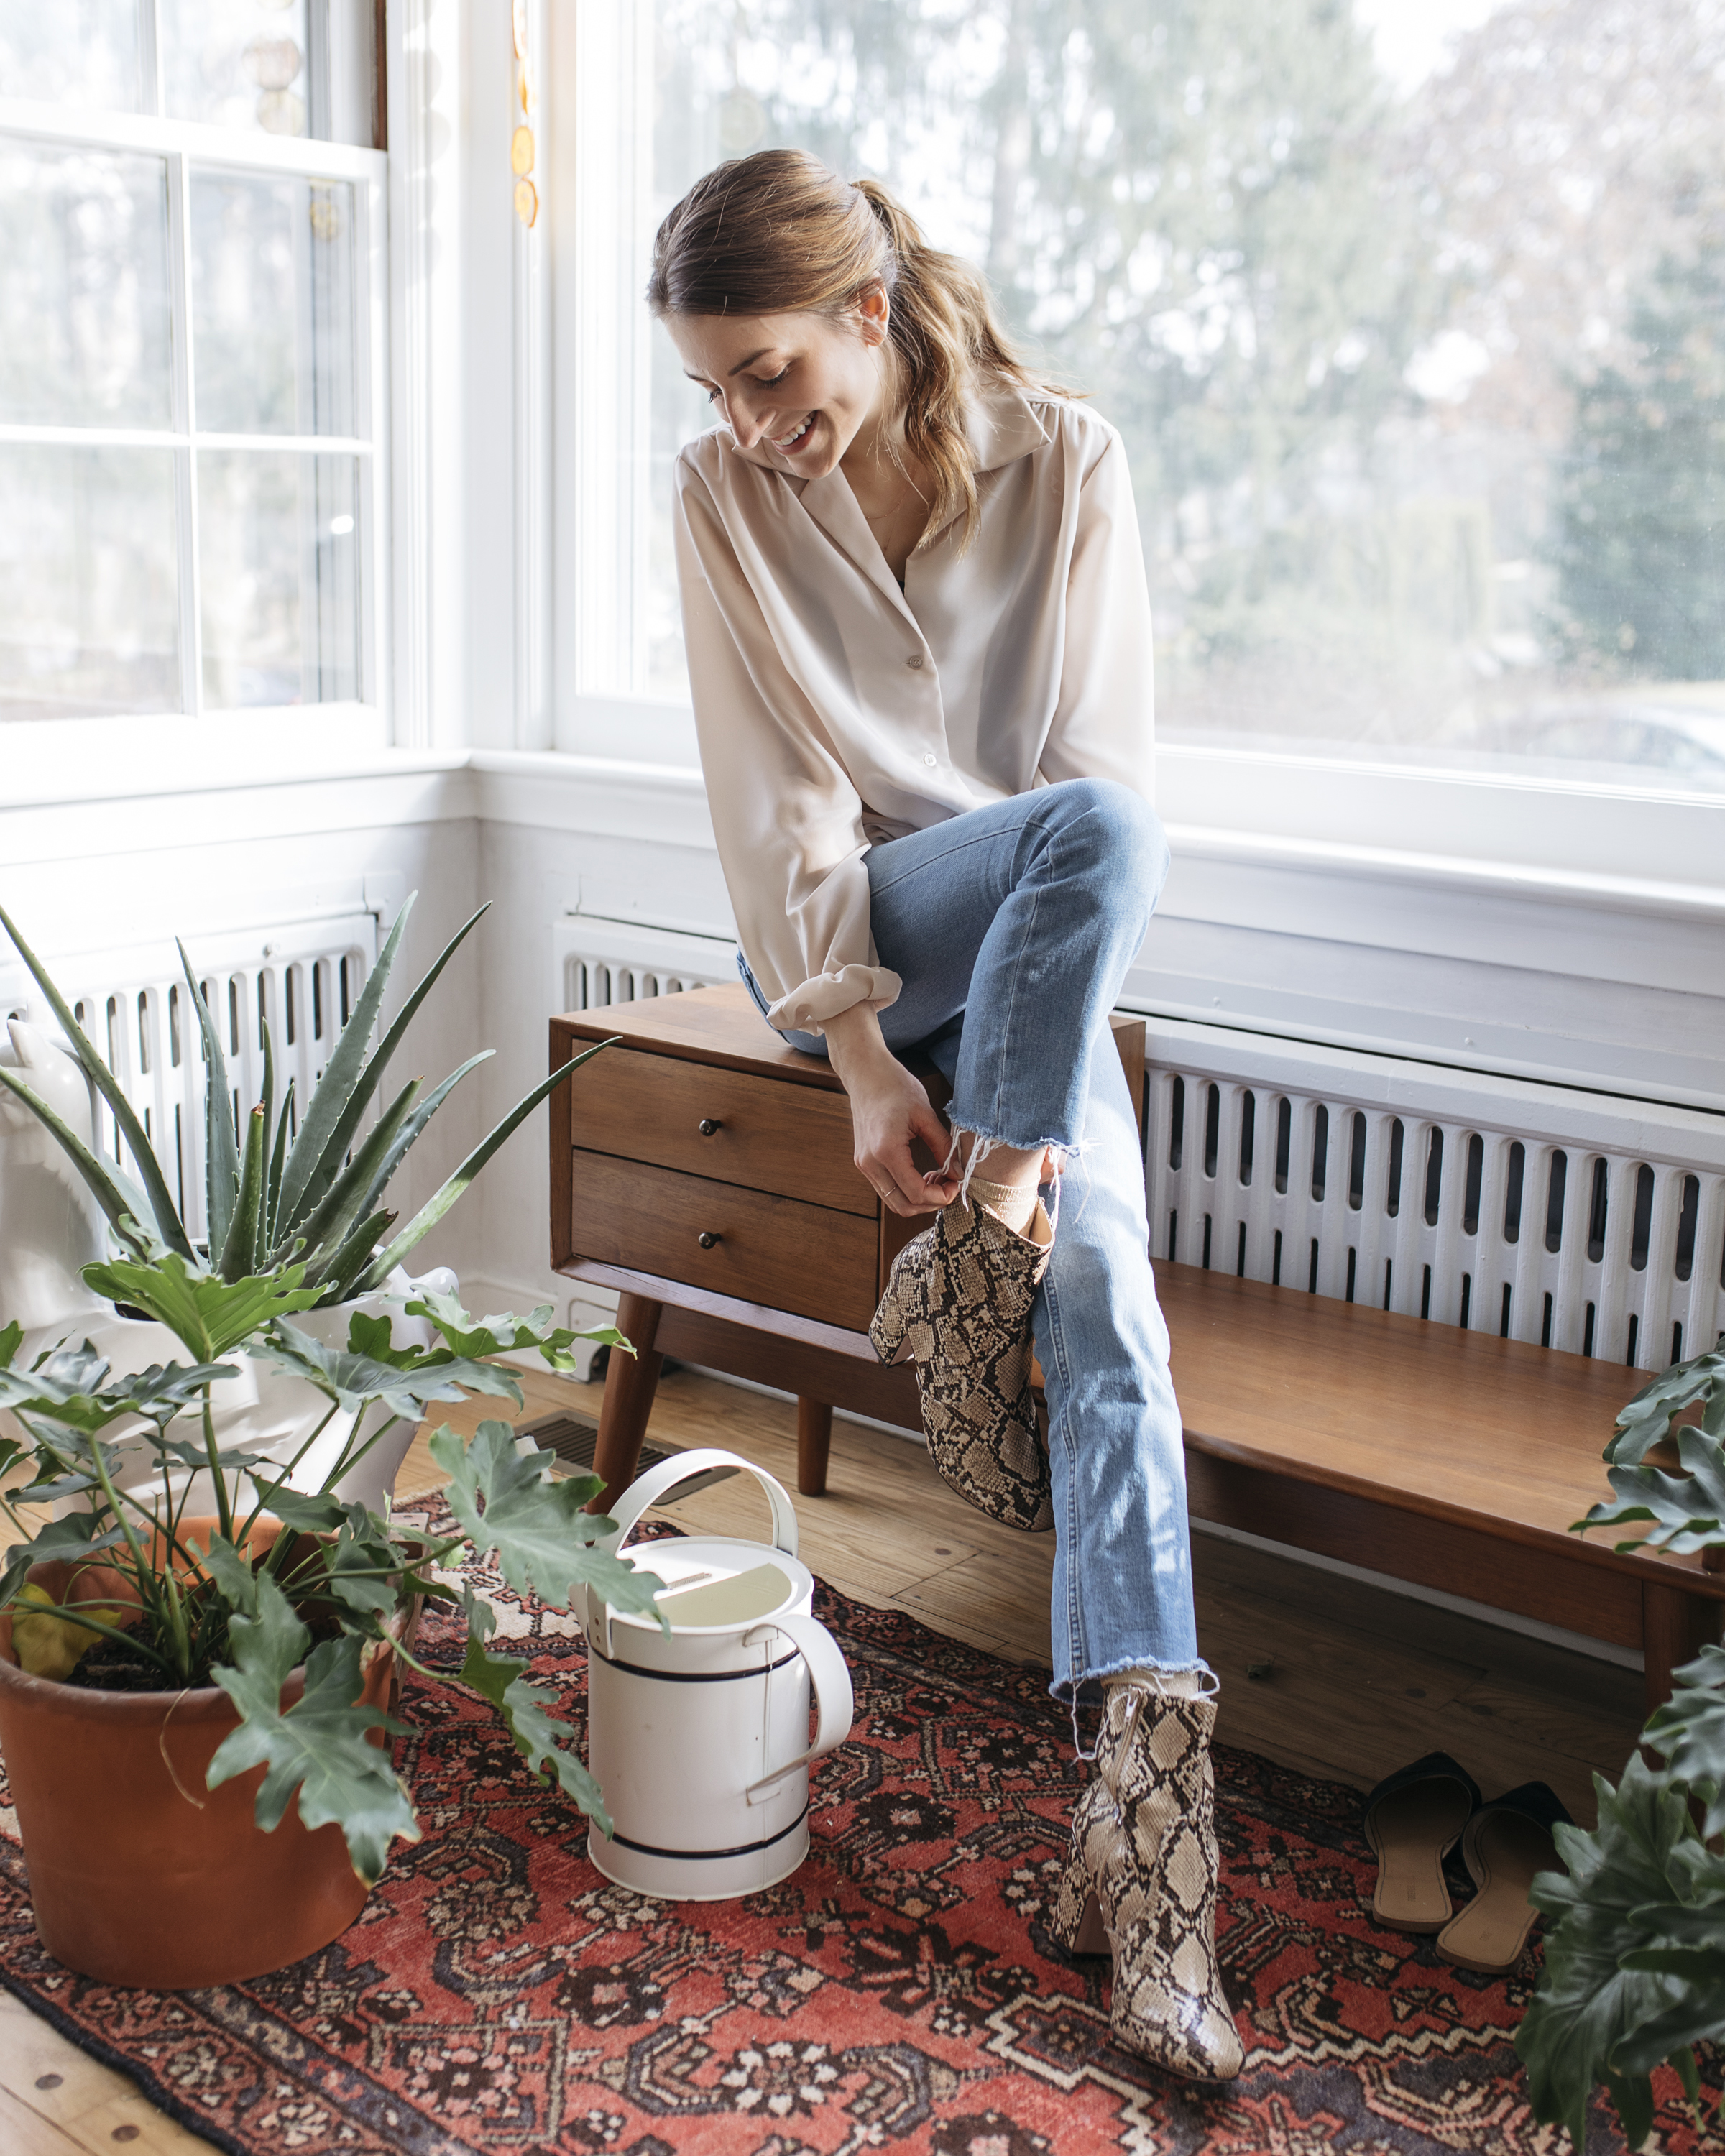 Being a girl boss has taught me so much about life. Read on as creative lifestyle and travel blogger emily r hess shares about lessons of managing a team and being a boss after founding luca creative co and being a creative director.